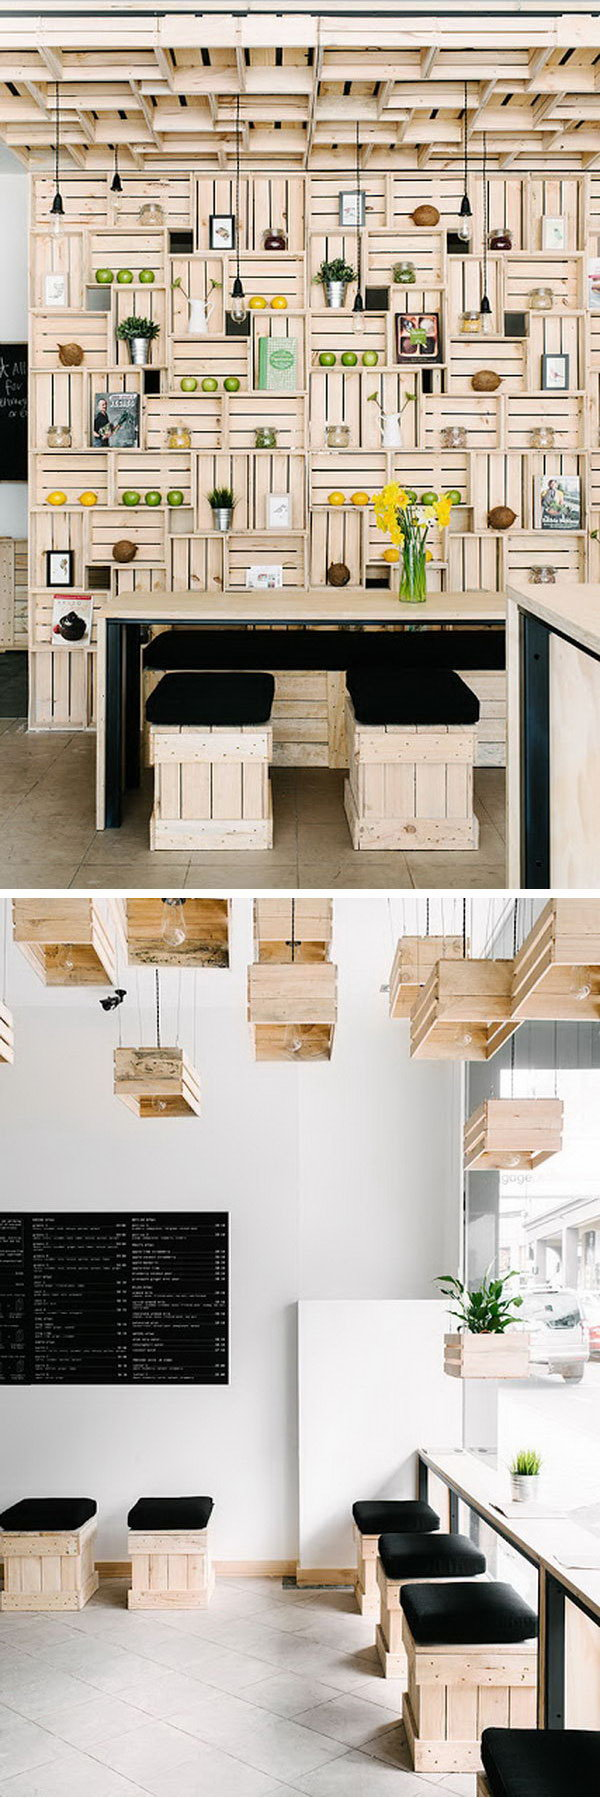 These wooden crates are used for shelves, stools and even chandeliers for a natural look.